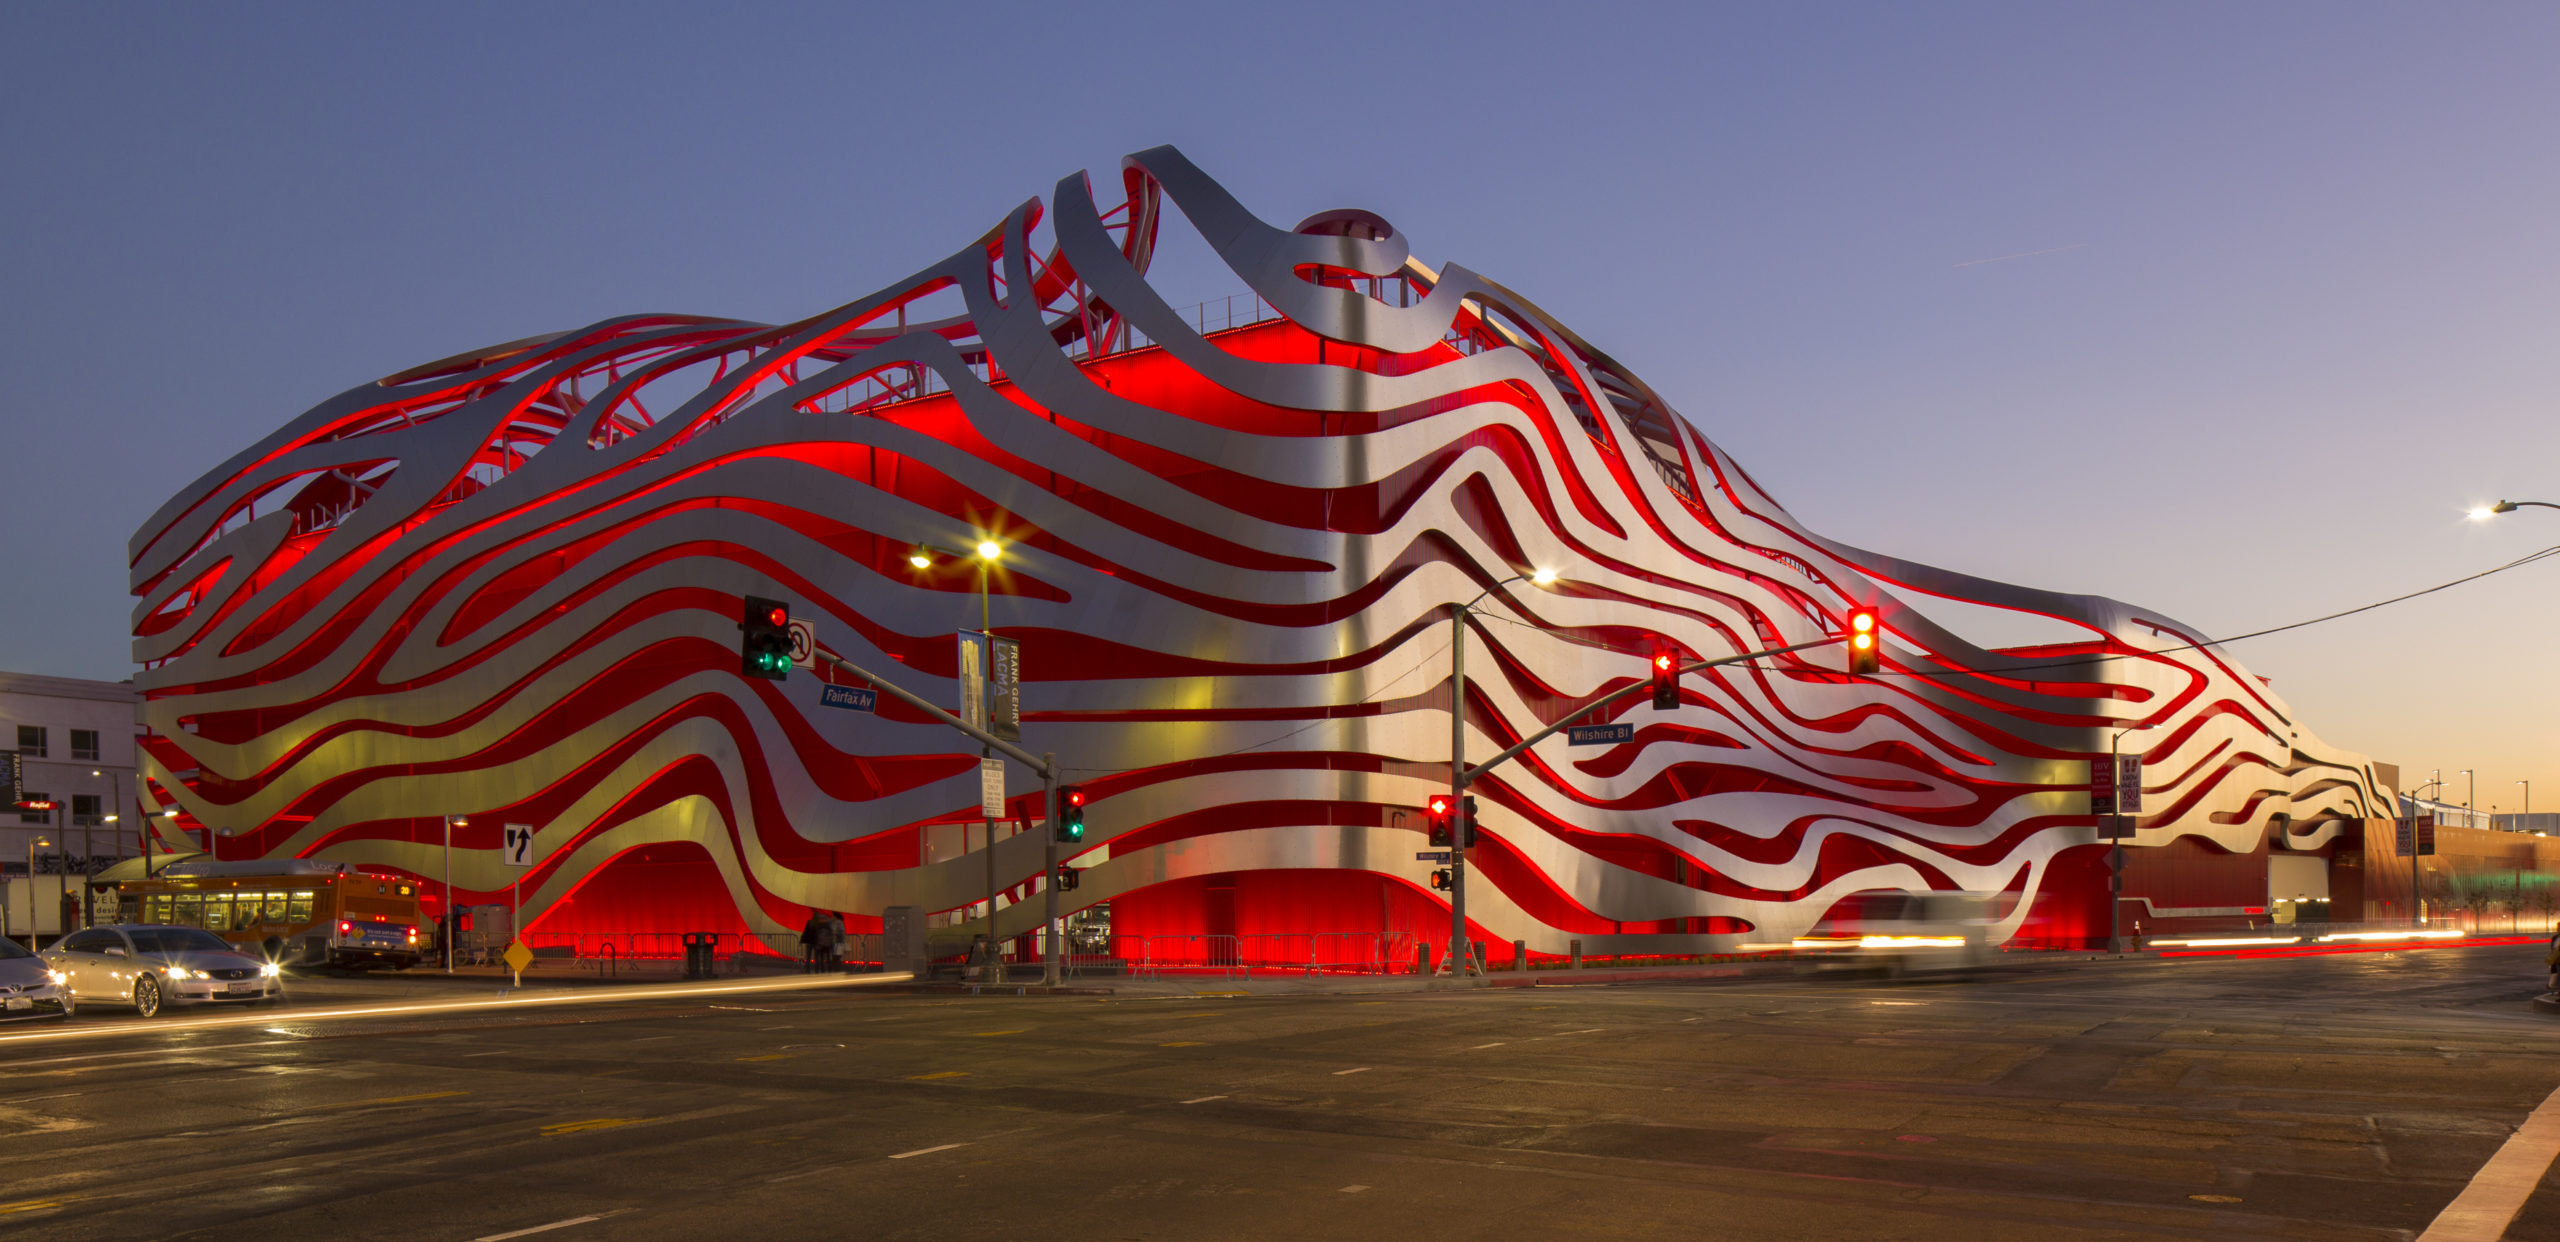 Petersen Automotive Museum Re-Opens Its Doors